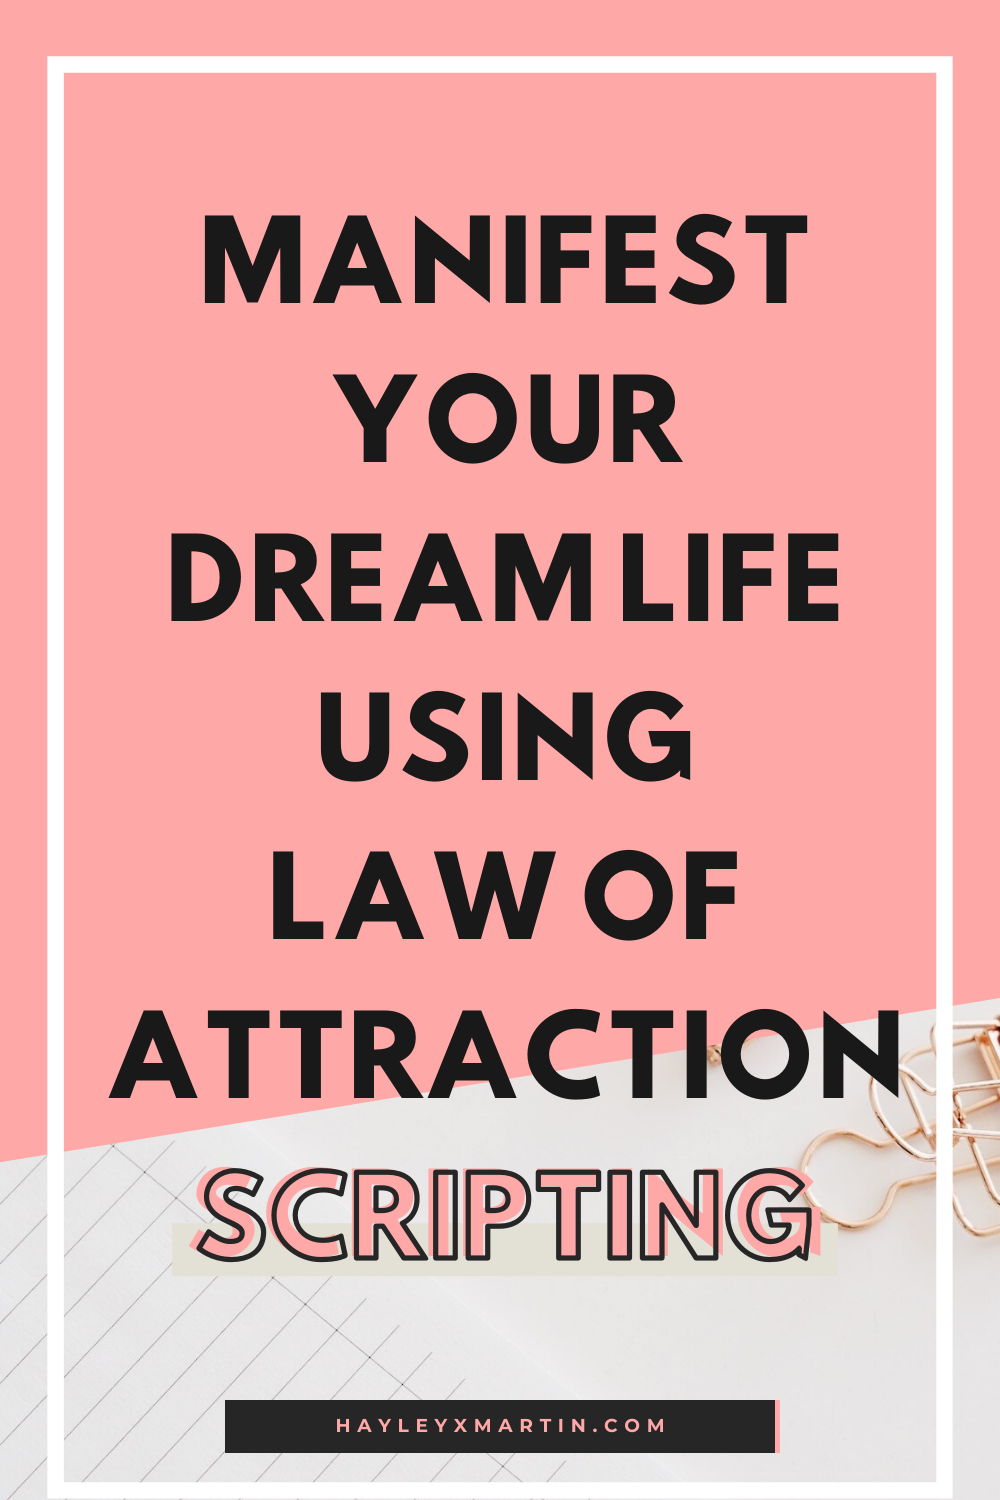 MANIFEST YOUR DREAM LIFE USING LAW OF ATTRACTION | HAYLEYXMARTIN